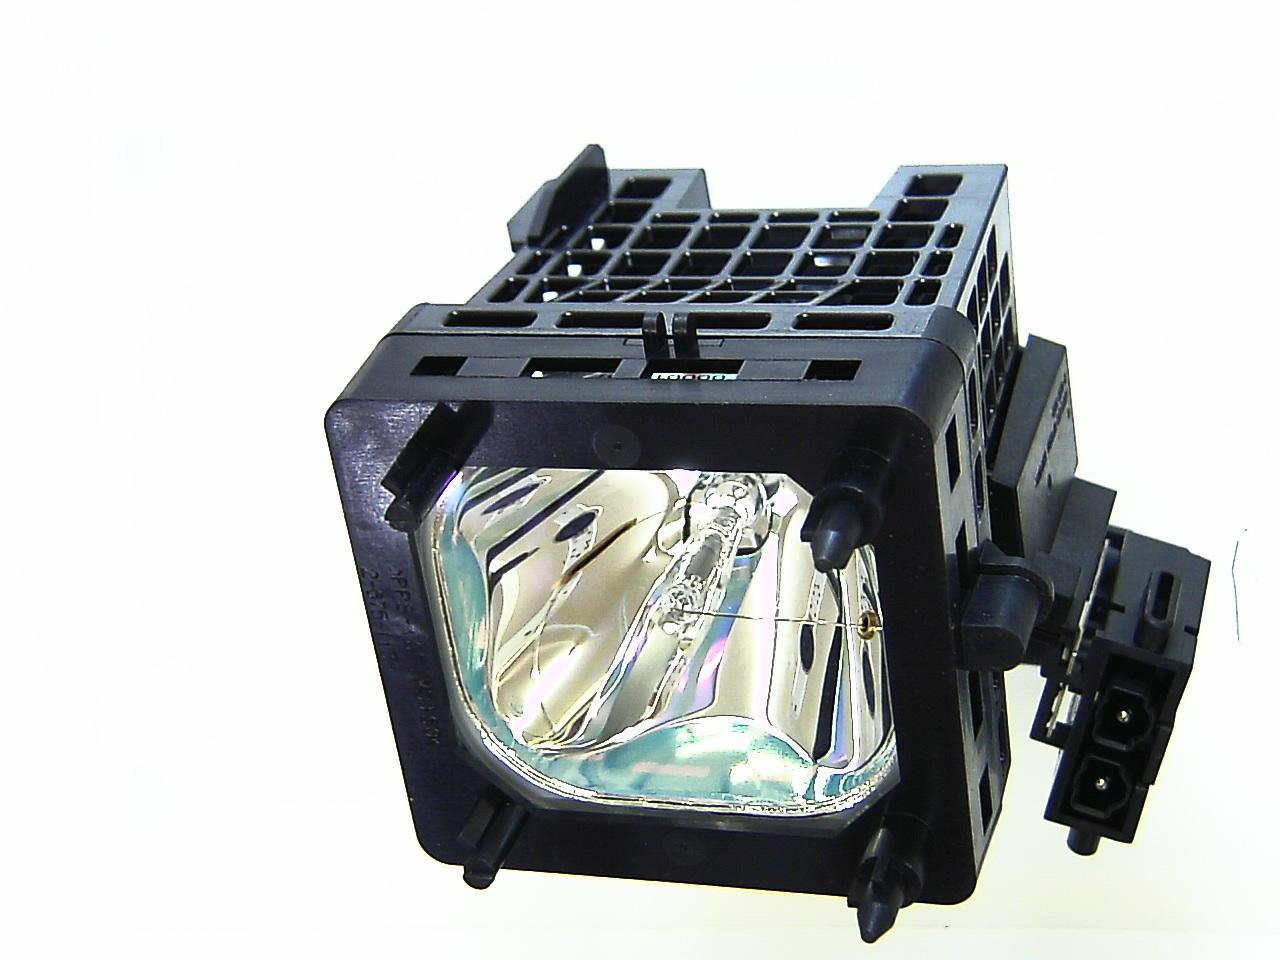 Sony Kds 60a3000 Genuine Original Rear Projection Tv Lamp